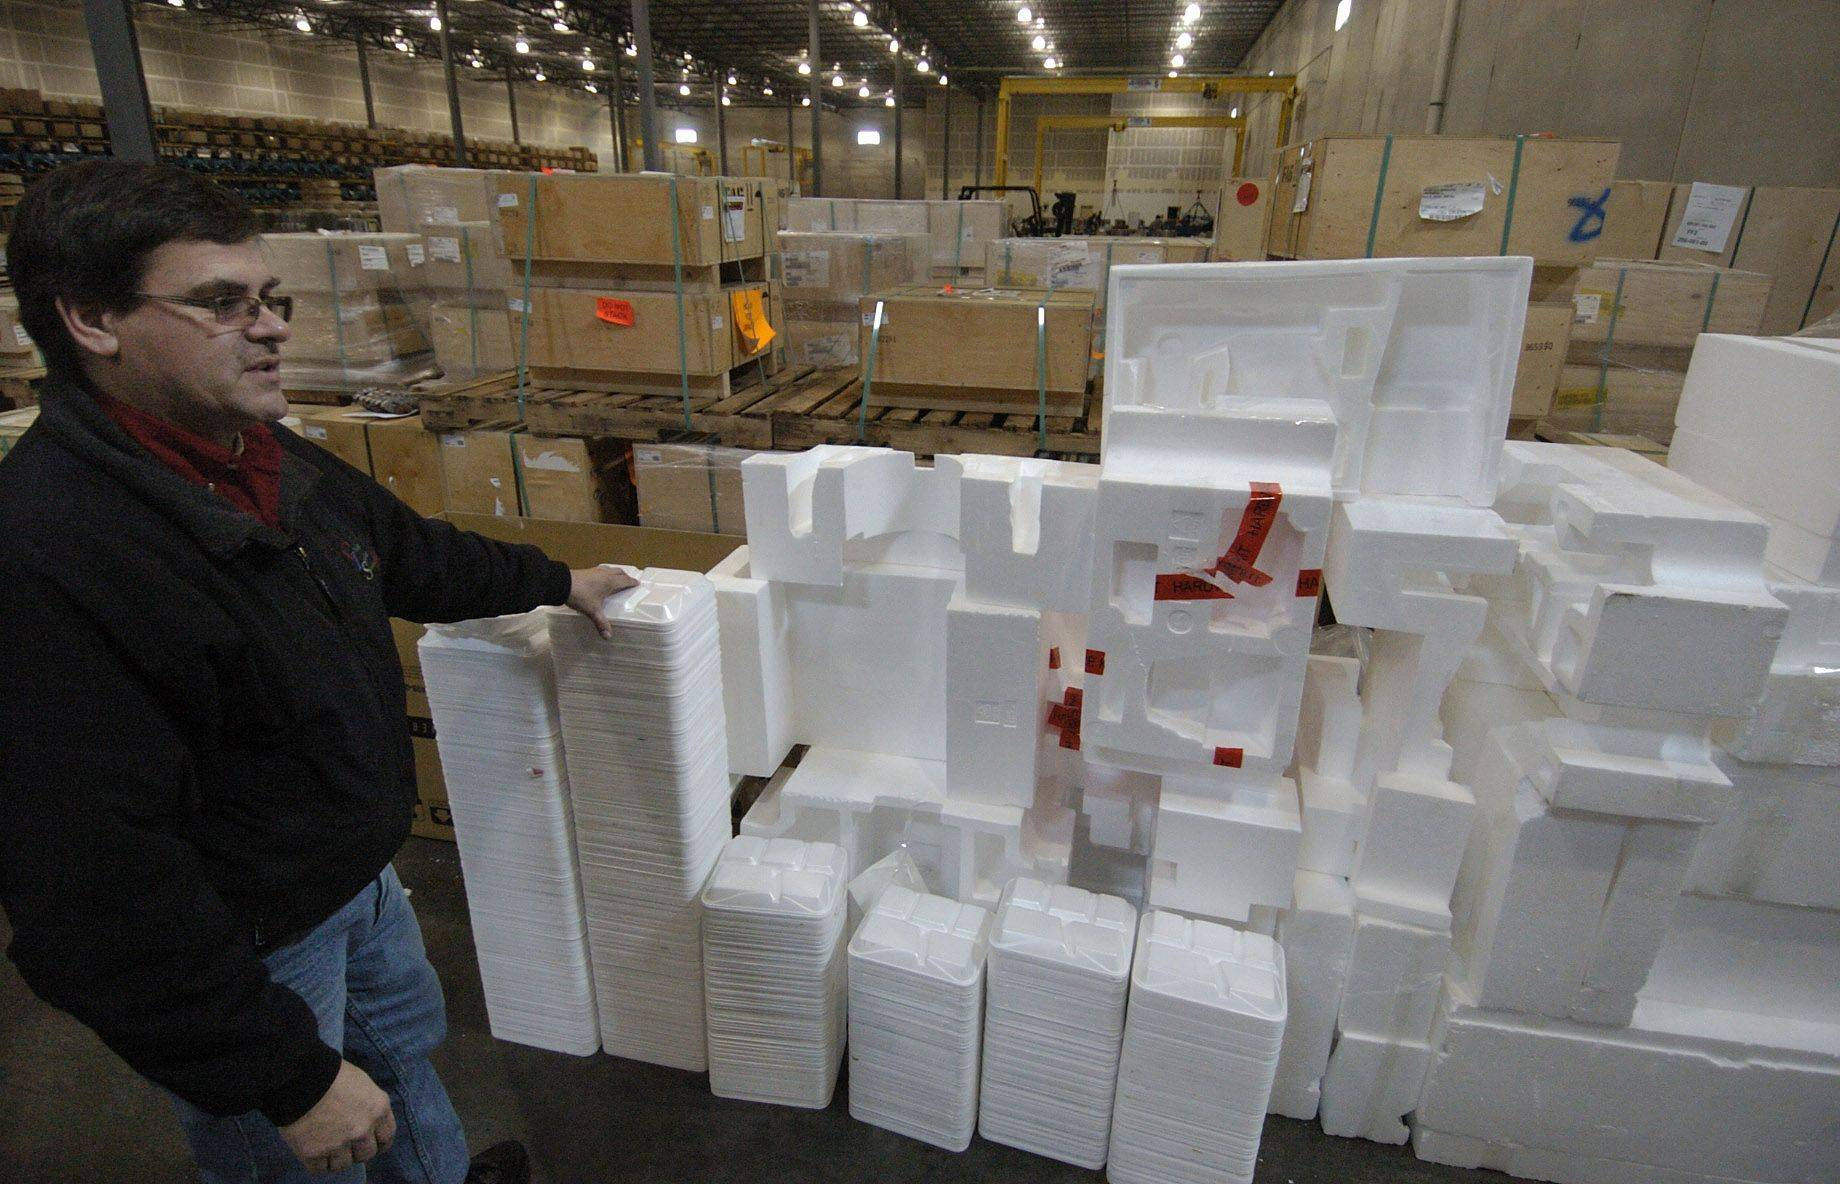 Ken Santowski looks over a pile of packing foam along with foam lunch trays from Abbott Middle School in Elgin.